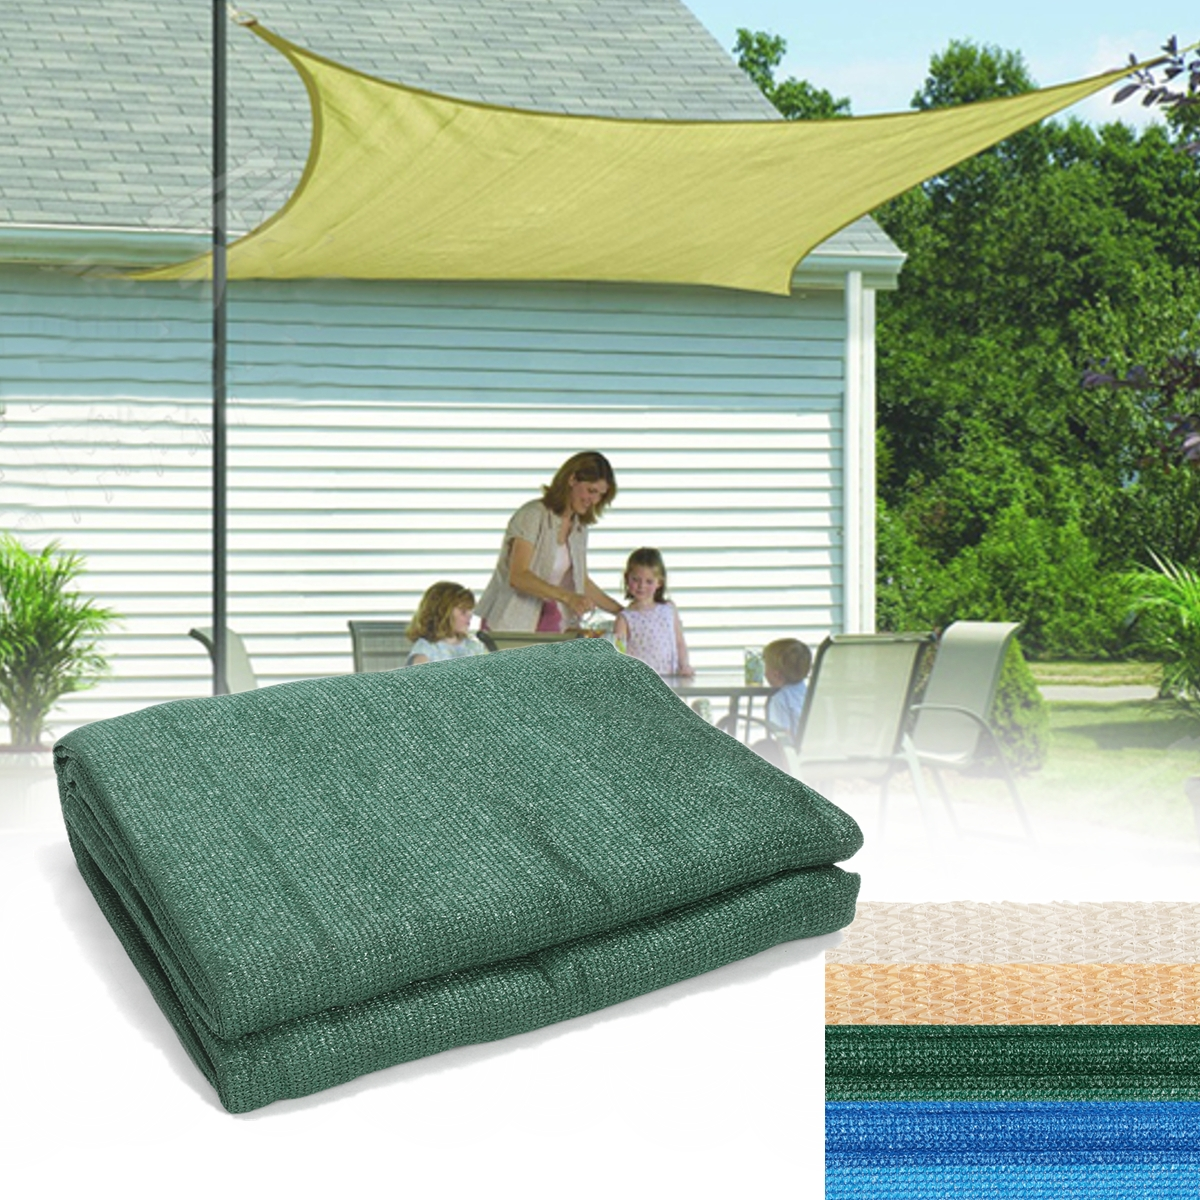 3mx3m Square 90% UV Block Sun Shade Sail Garden Patio